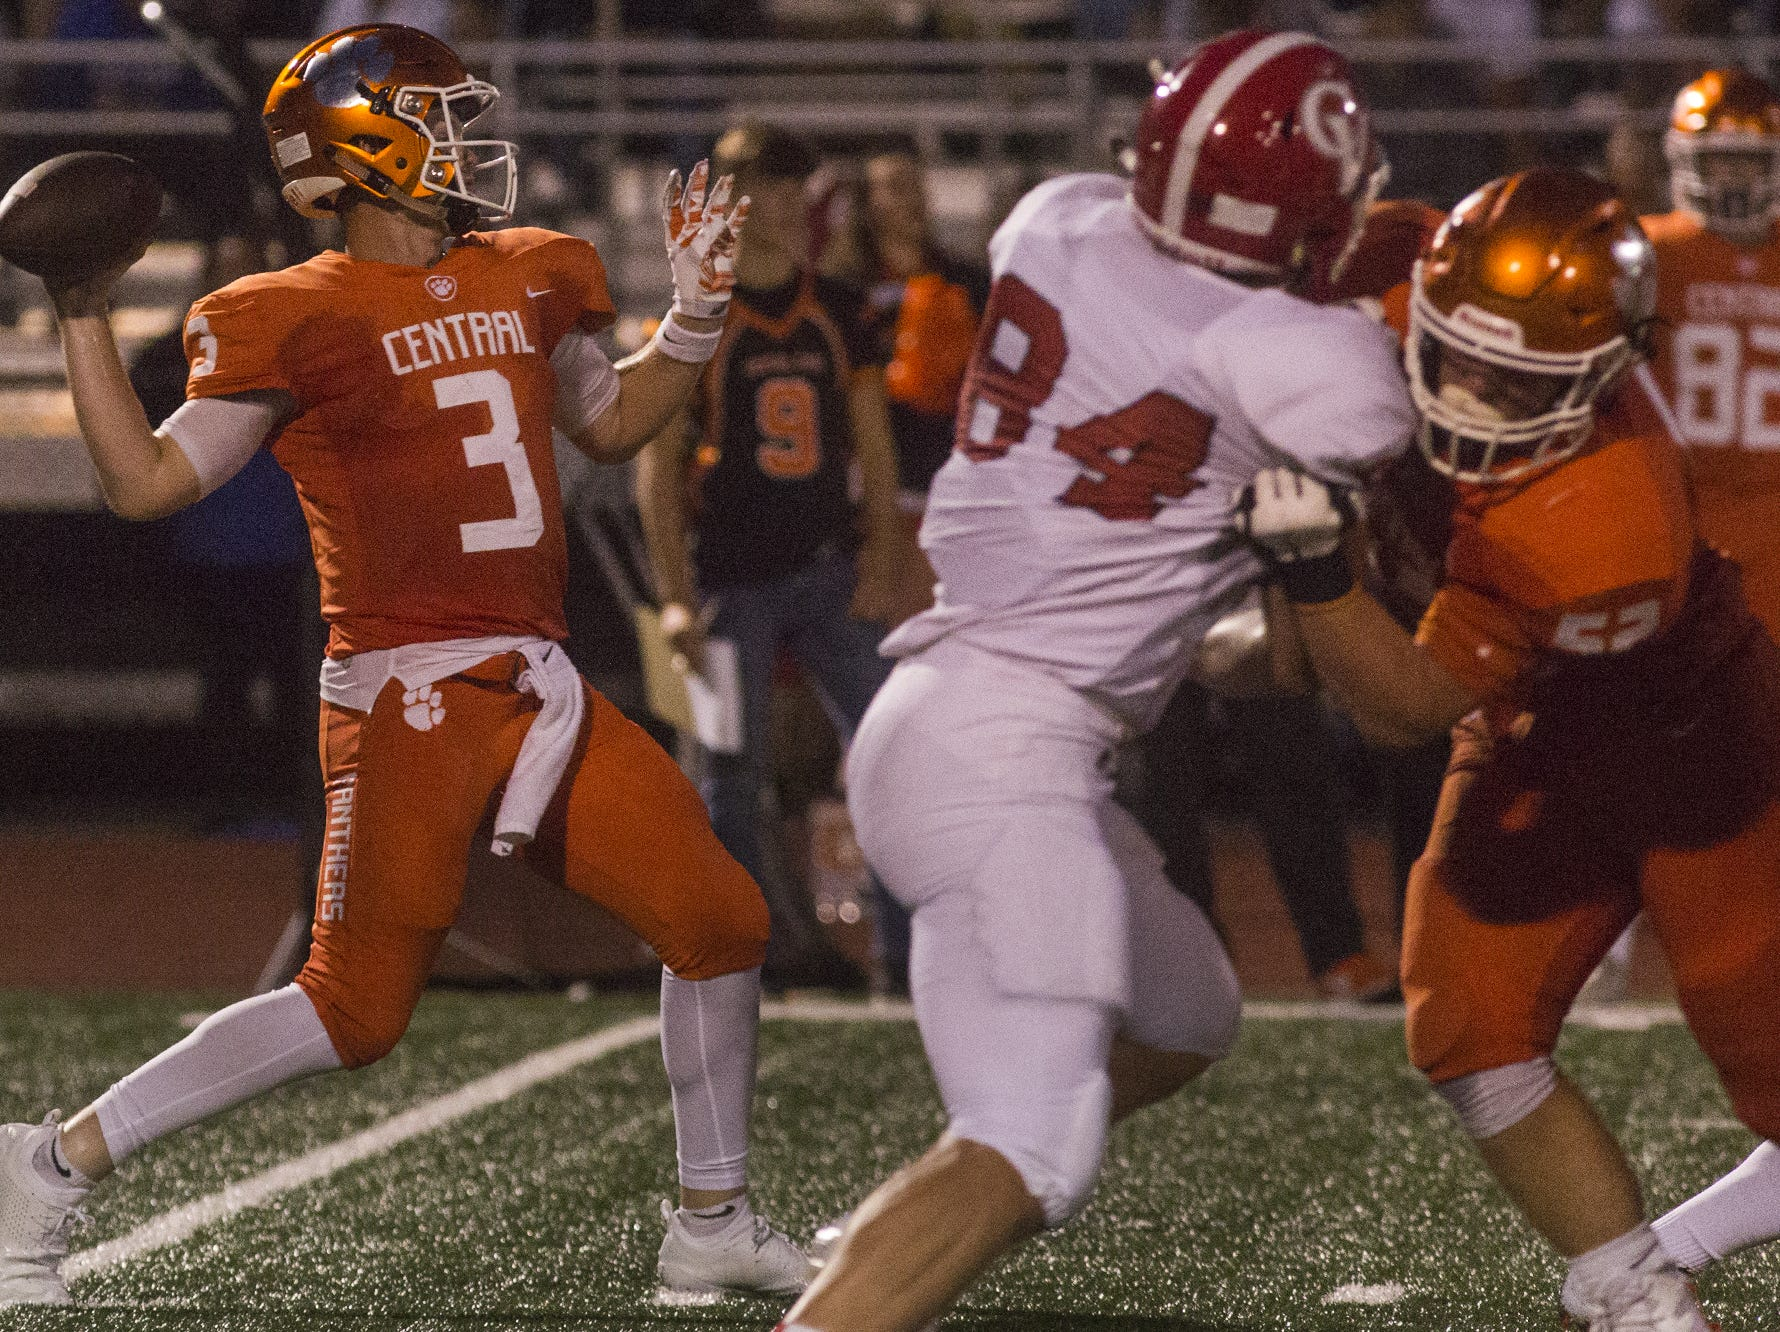 Central York quarterback Cade Pribula throws for the Panthers second touchdown. Central York defeats Cumberland Valley 31-14 in football at Central York High School in Springettsbury Township, Friday, August 31, 2018.